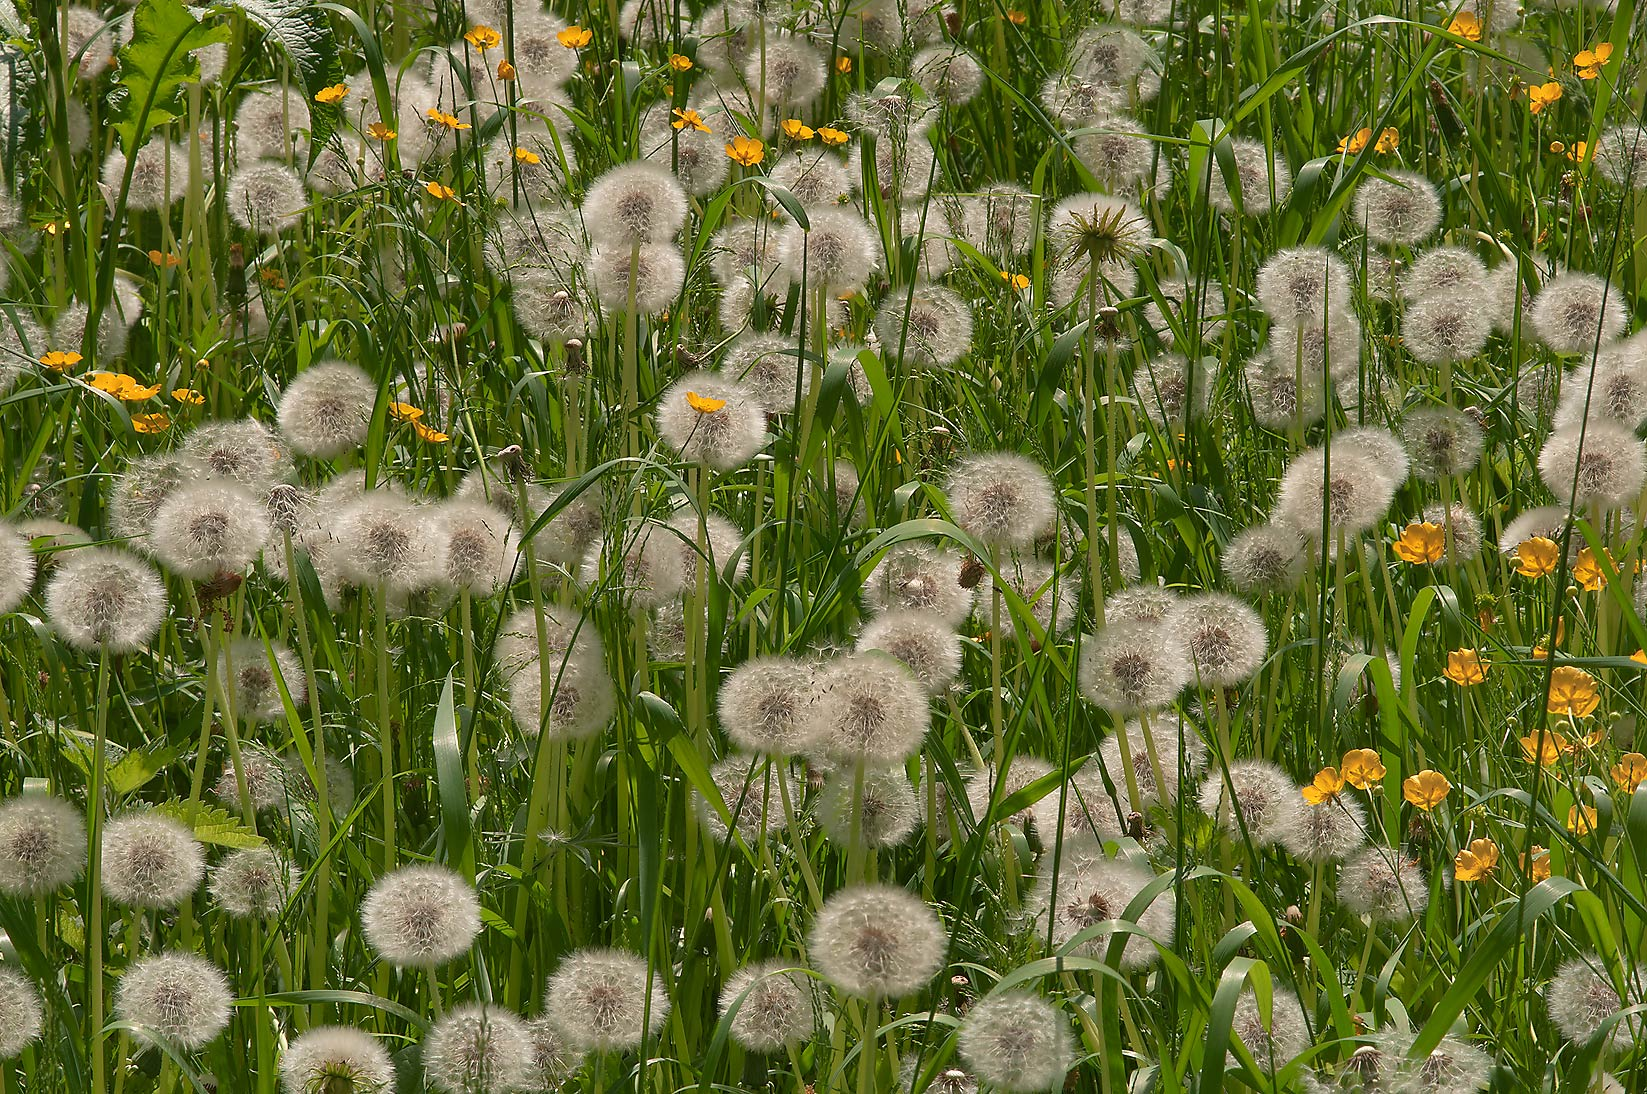 Photo 960 24 Dandelions And Buttercups In Botanic Gardens Of Institute St Petersburg Russia